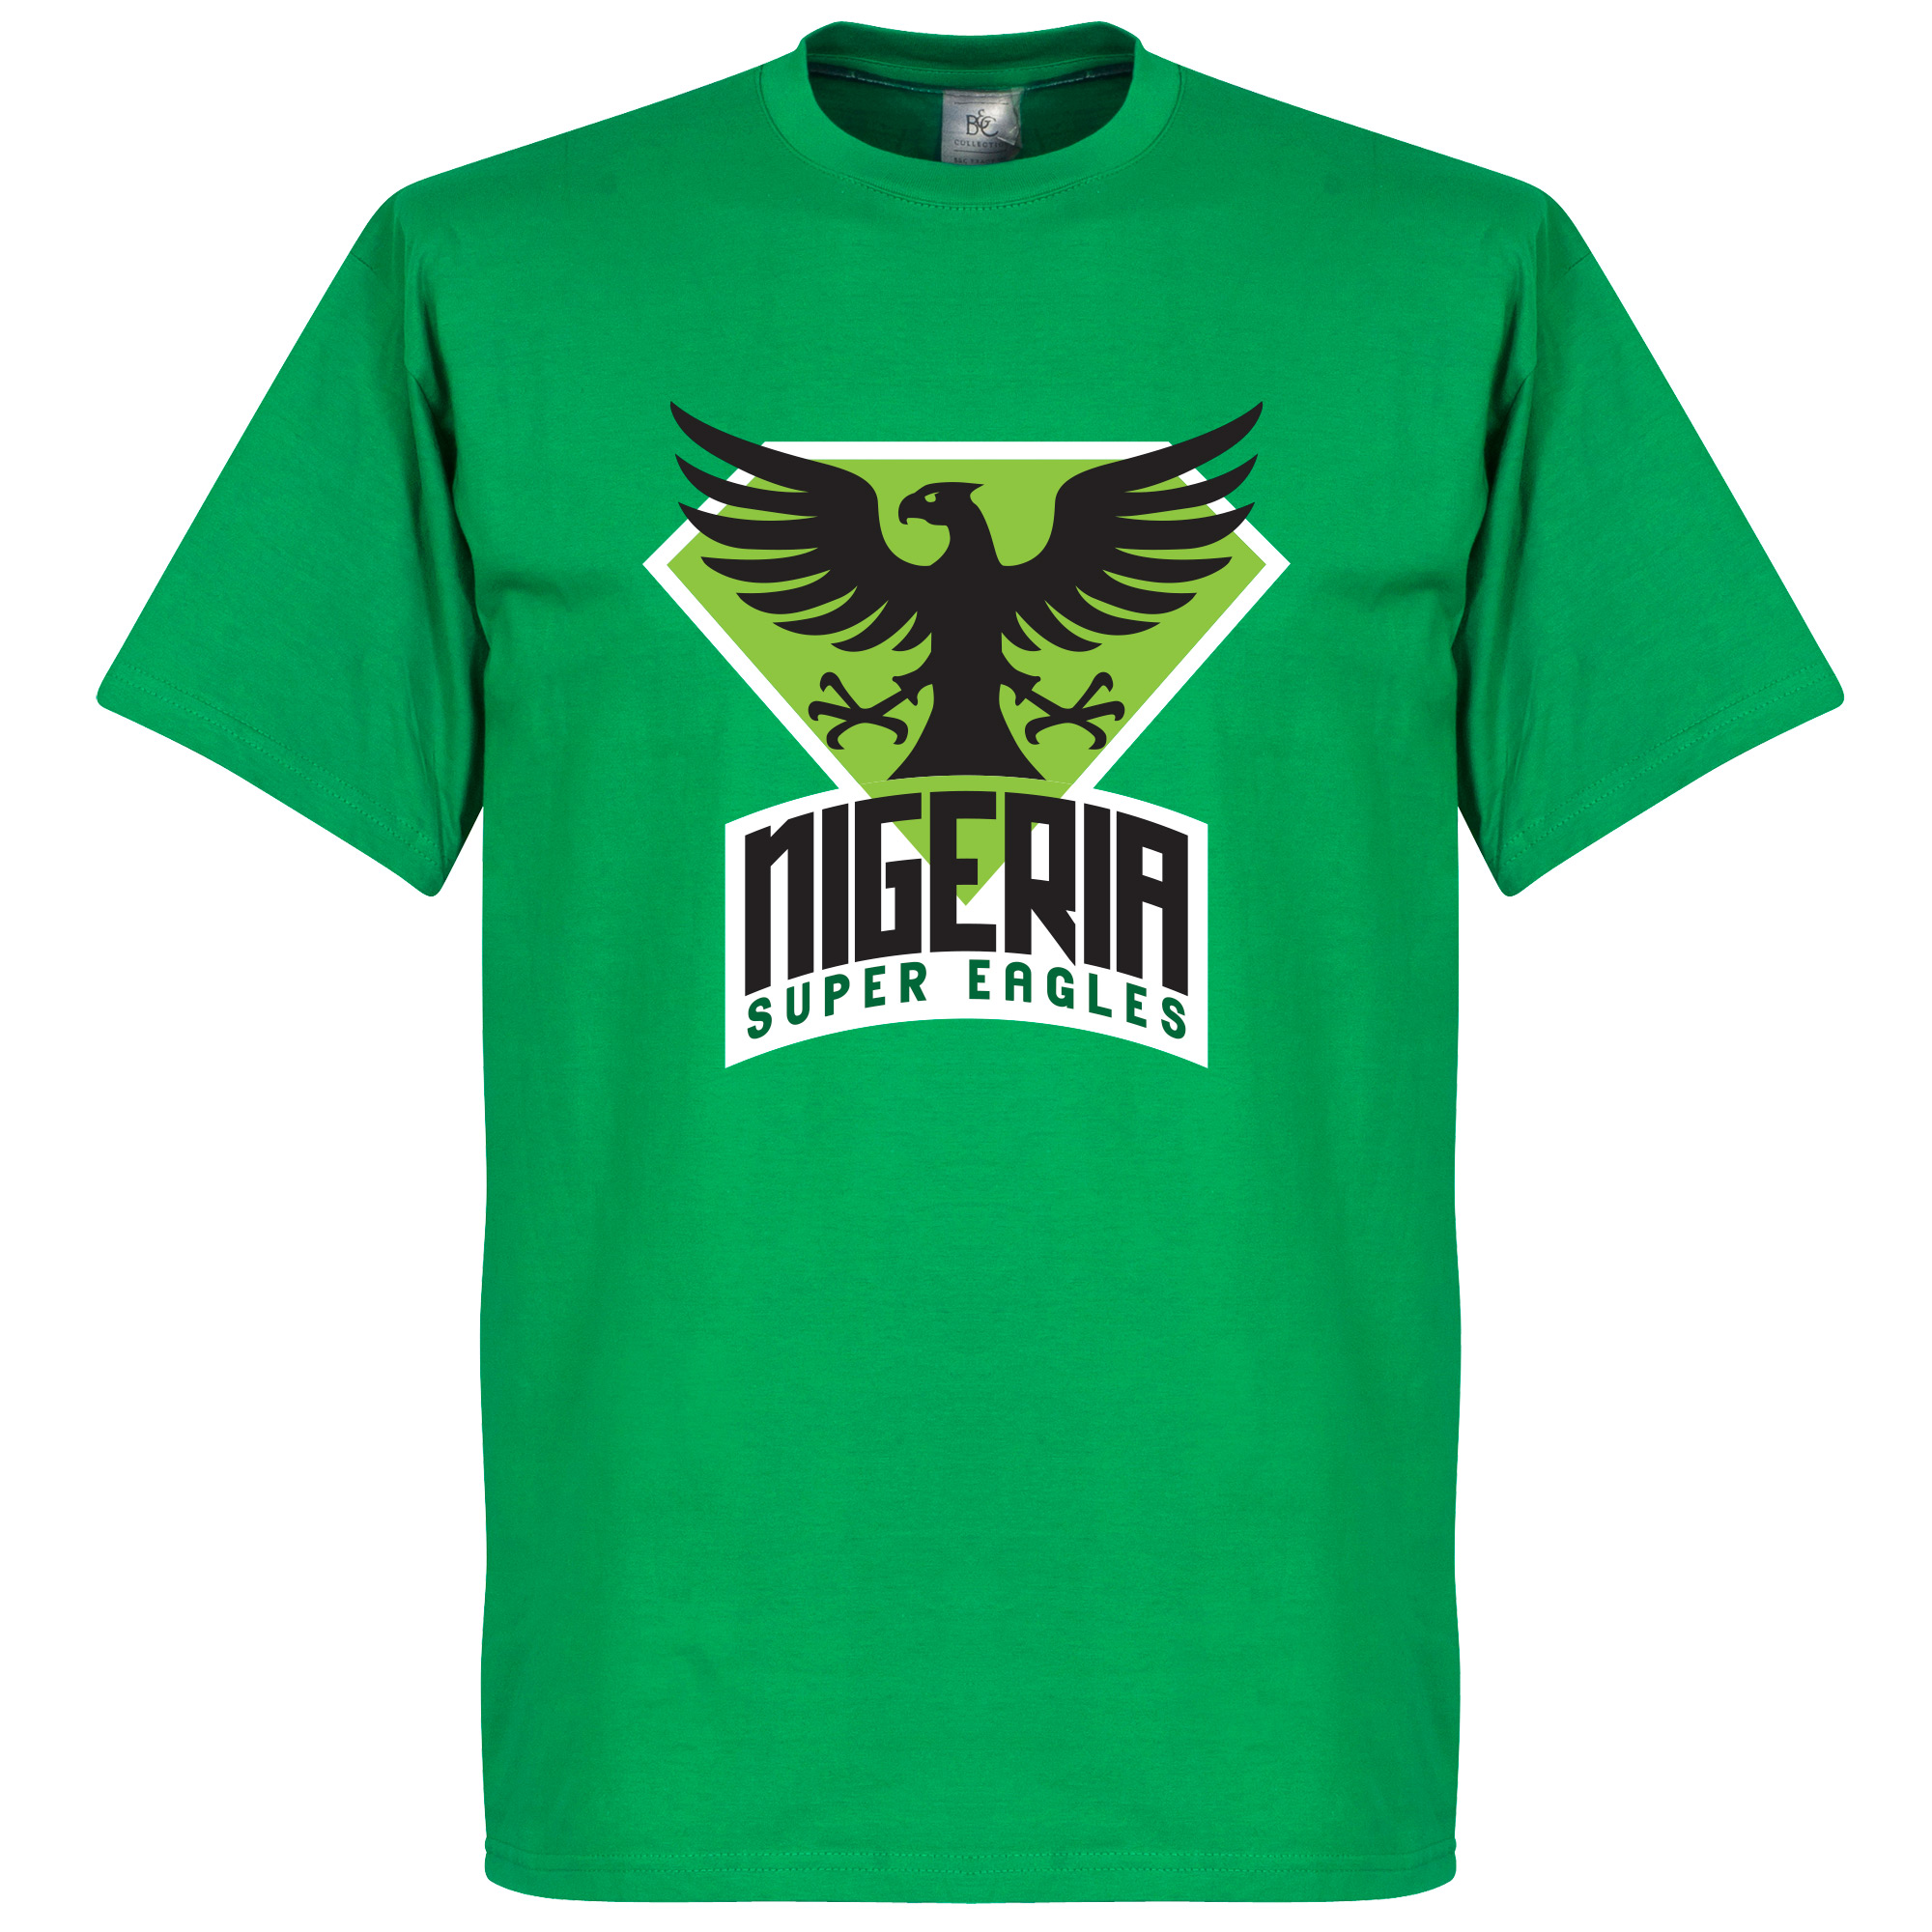 Nigeria Super Eagles Tee - M